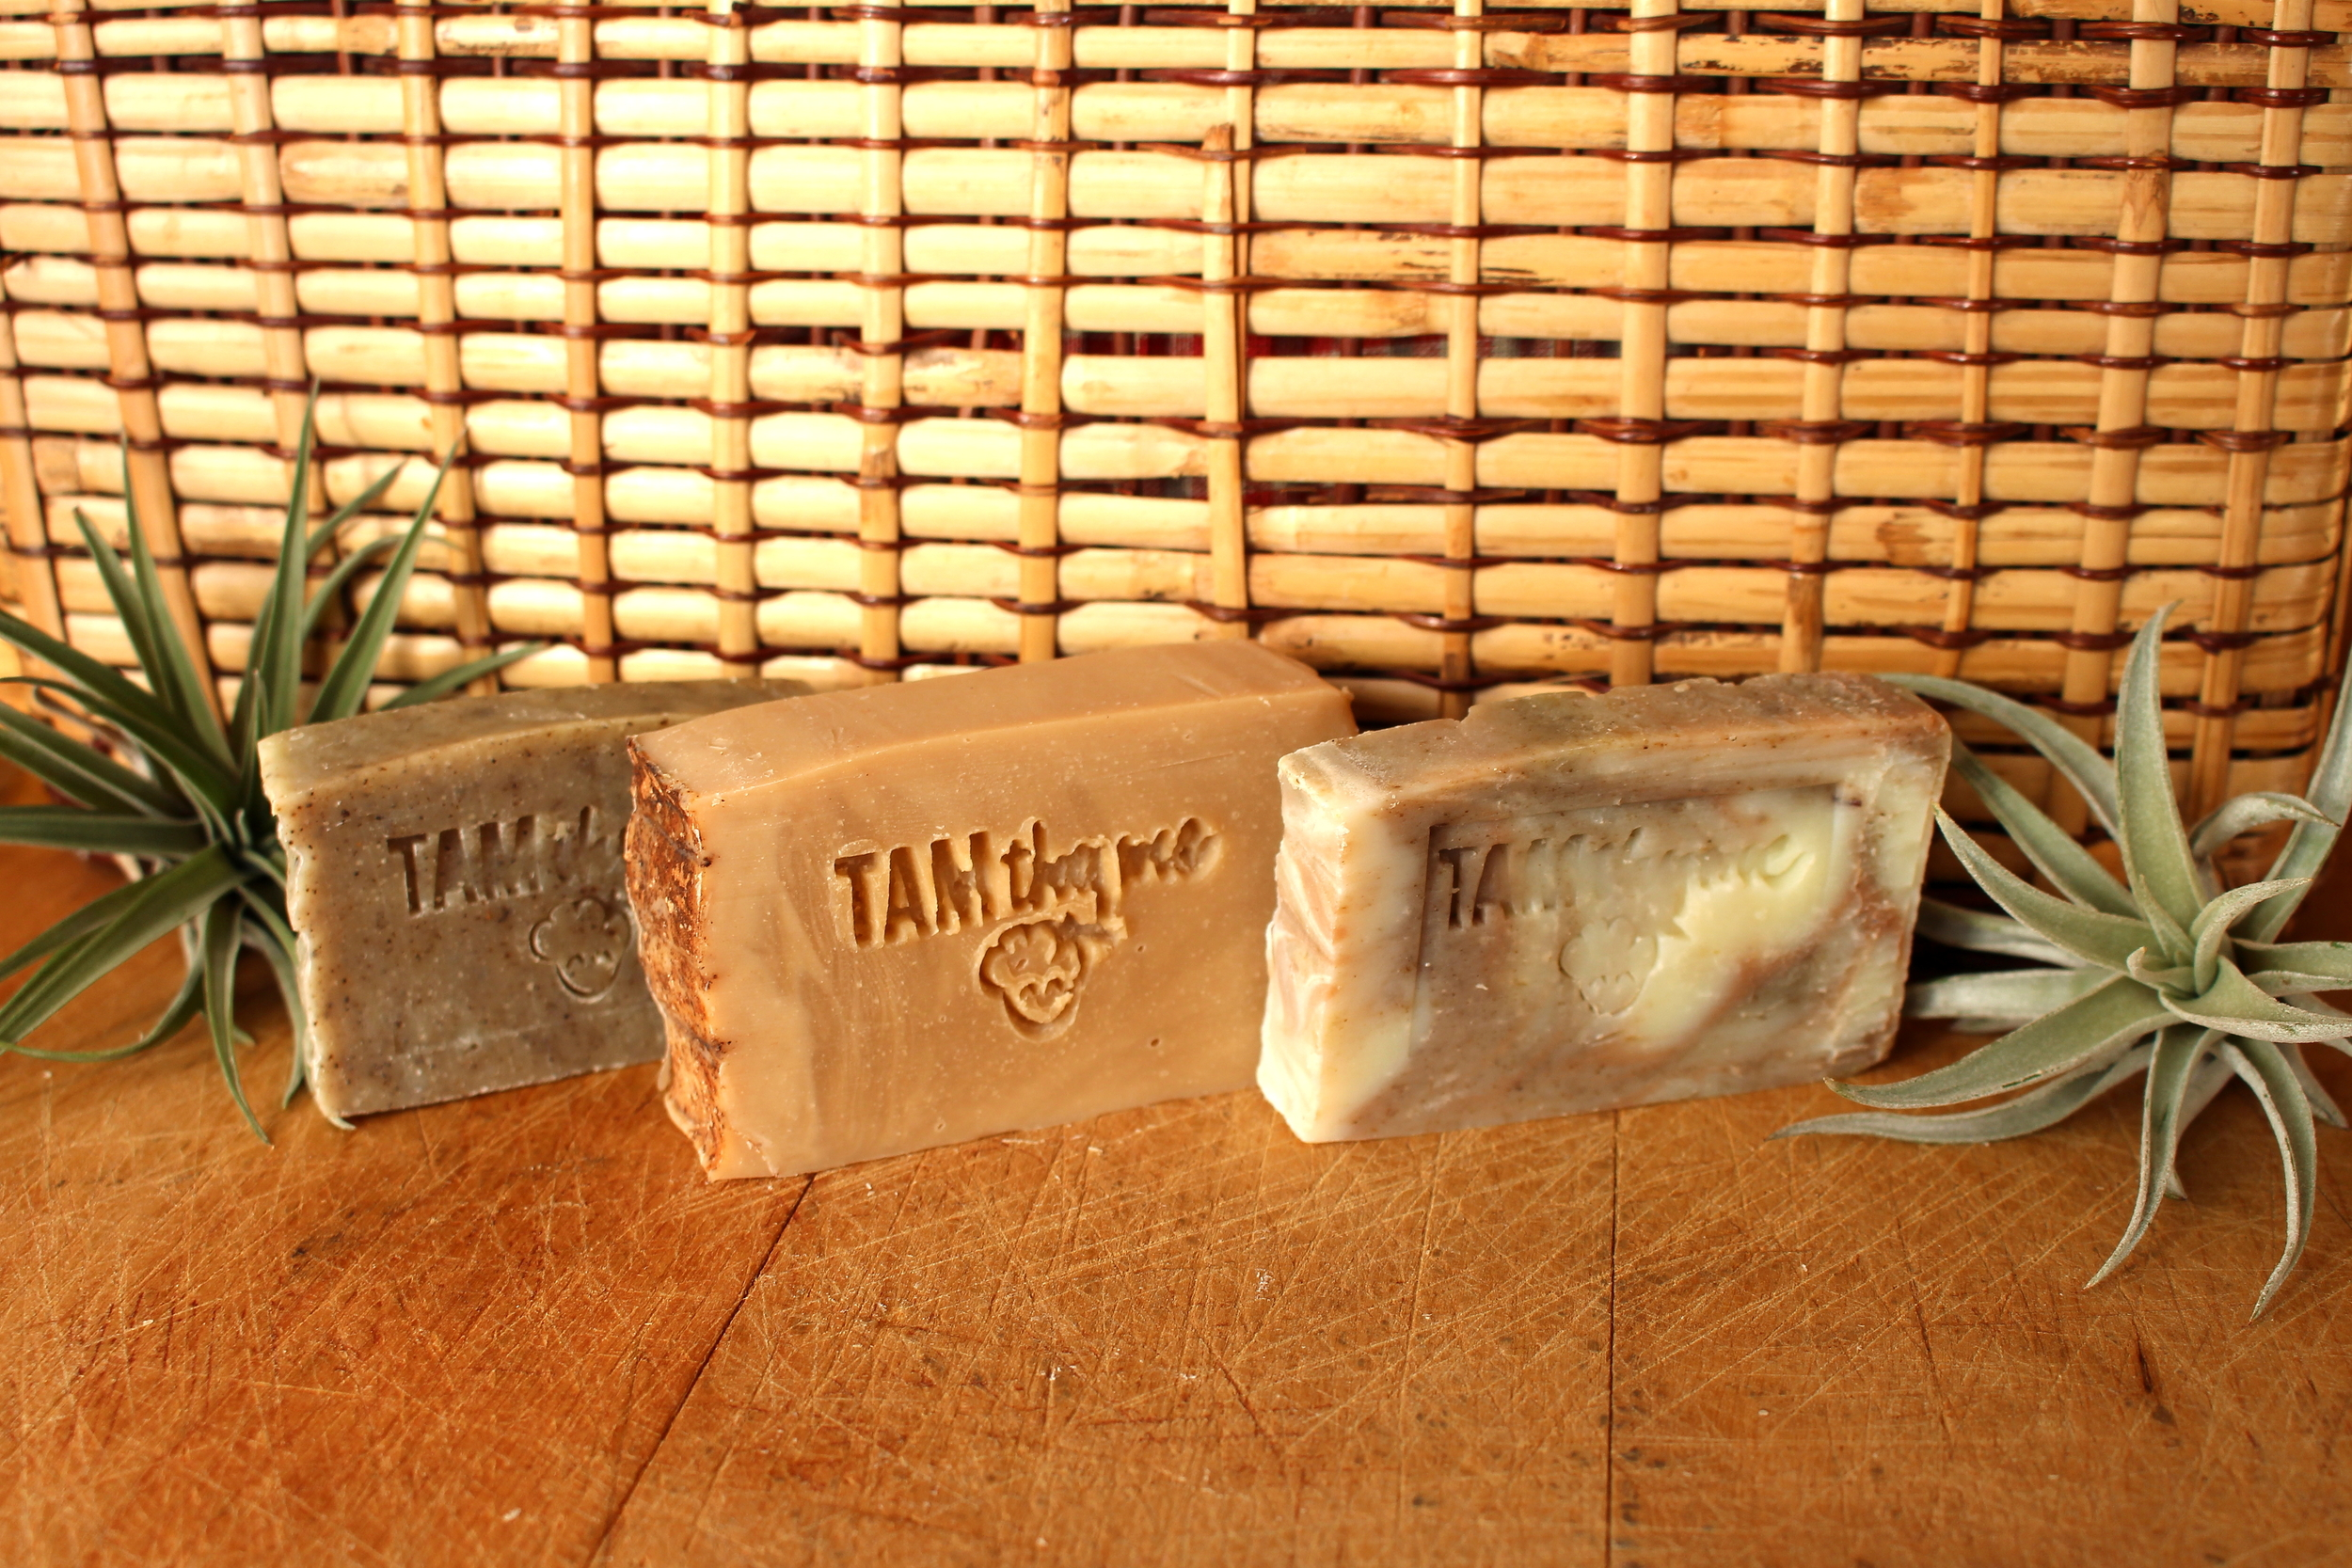 (FROM LEFT TO RIGHT) SAGE COLORED SOAP, MOROCCAN CLAY COLORED SOAP, MOROCCAN CLAY & NETTLE COLORED SOAP